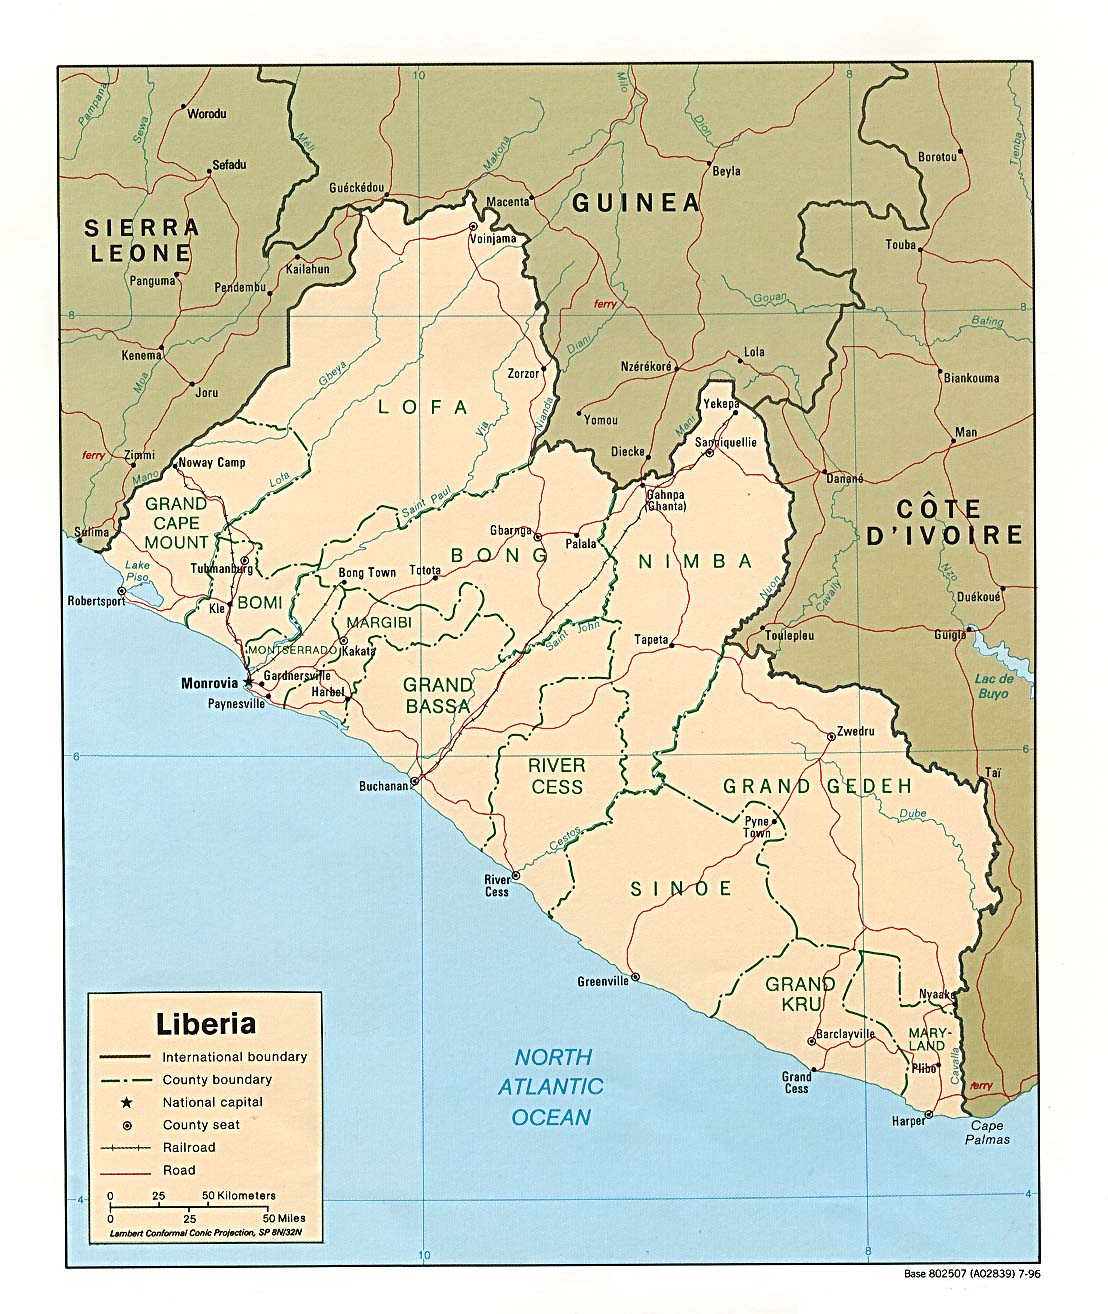 Liberia maps perry castaeda map collection ut library online liberia maps gumiabroncs Choice Image